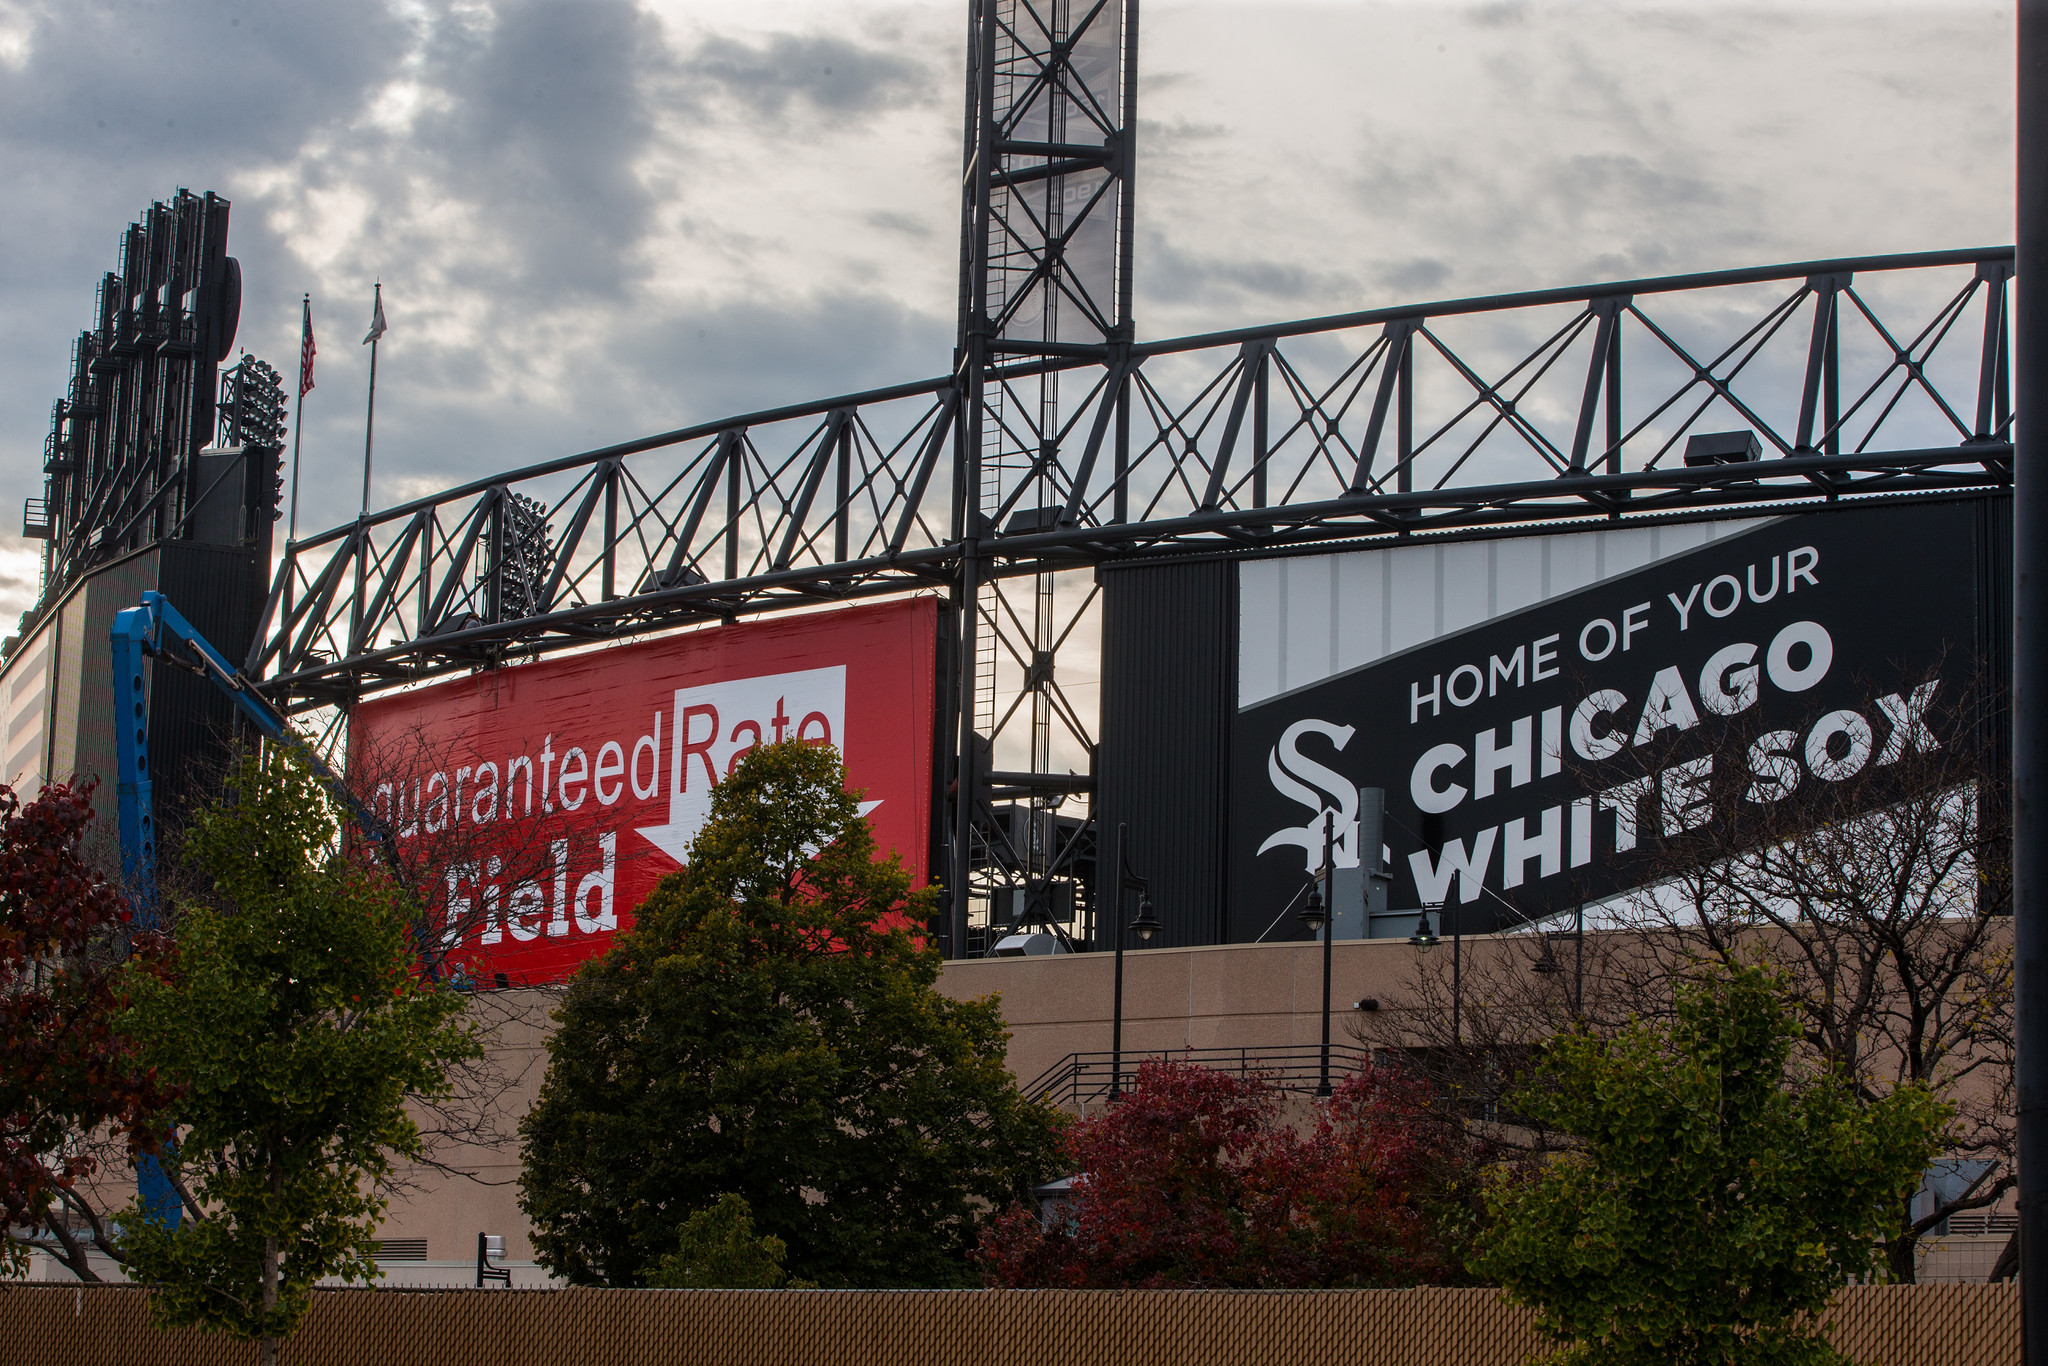 White-sox-fans-in-the-chicago-city-20170314